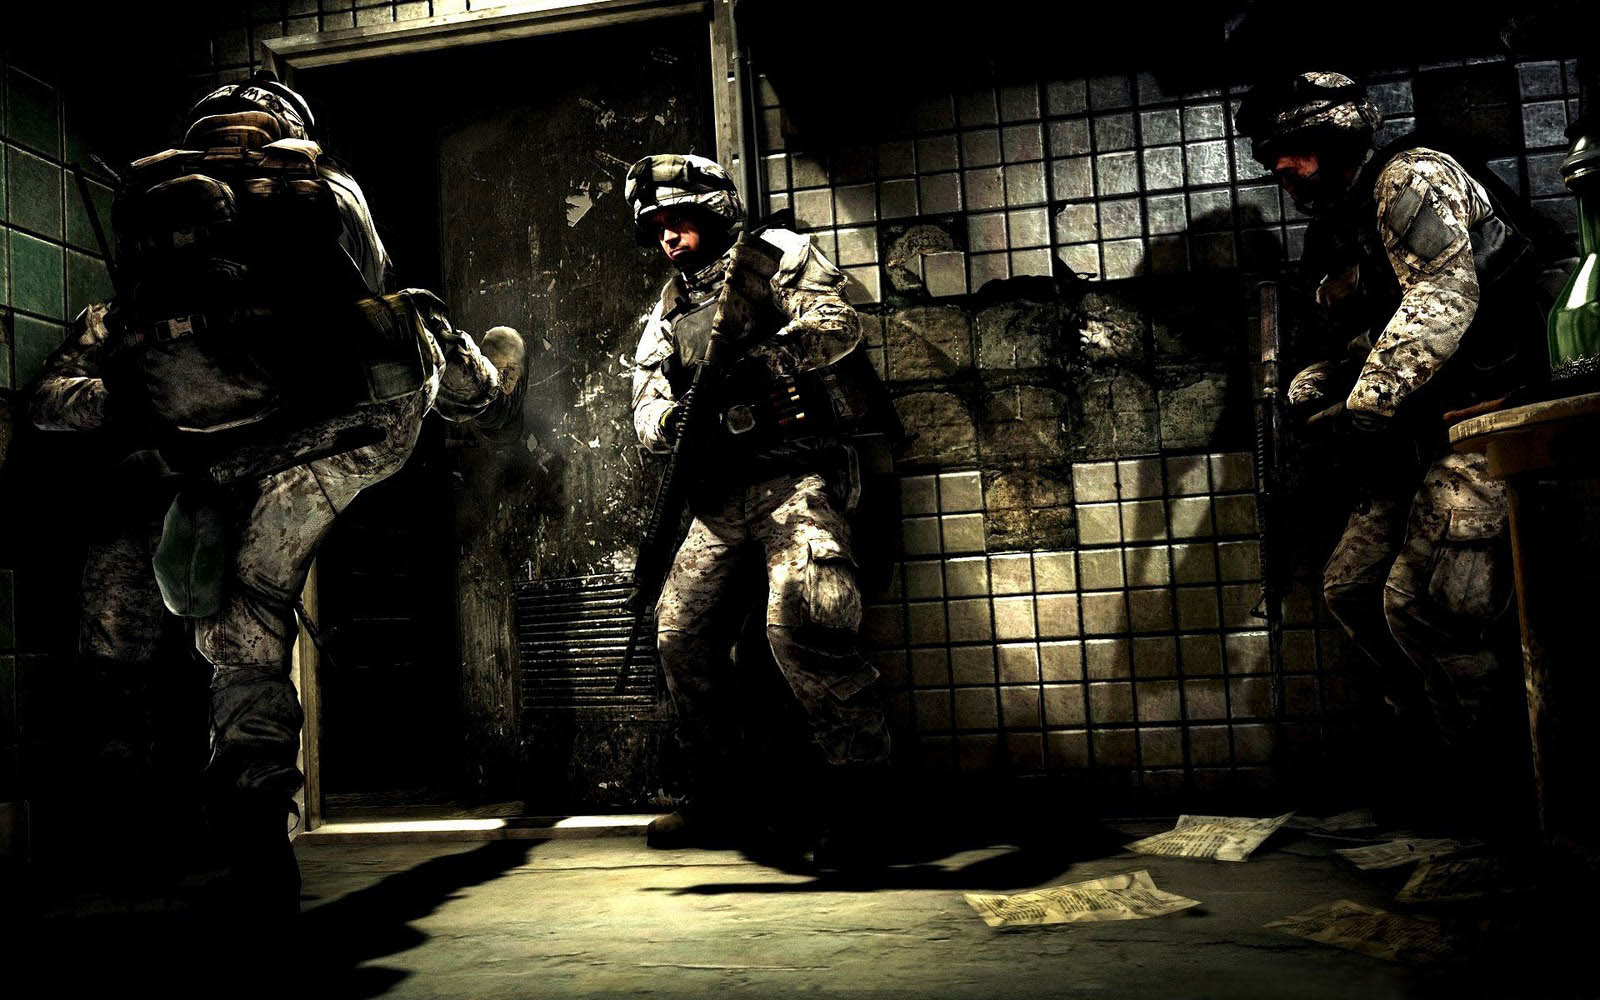 Battlefield 3 Game Wallpapers Battlefield 3 Game Desktop Wallpapers 1600x1000